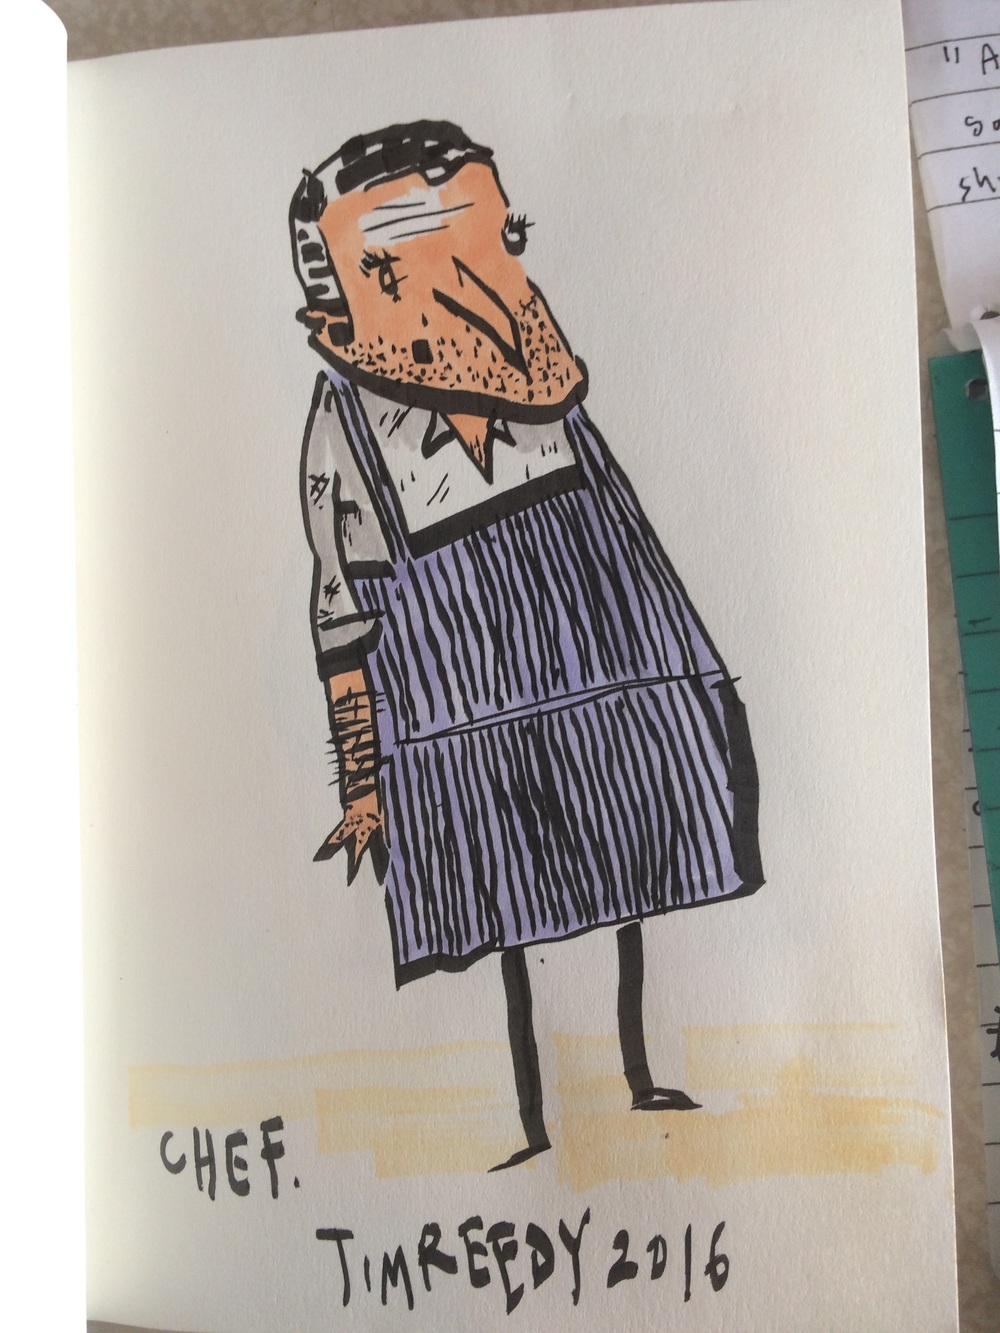 Chef (brush pen and watercolour, 2016).